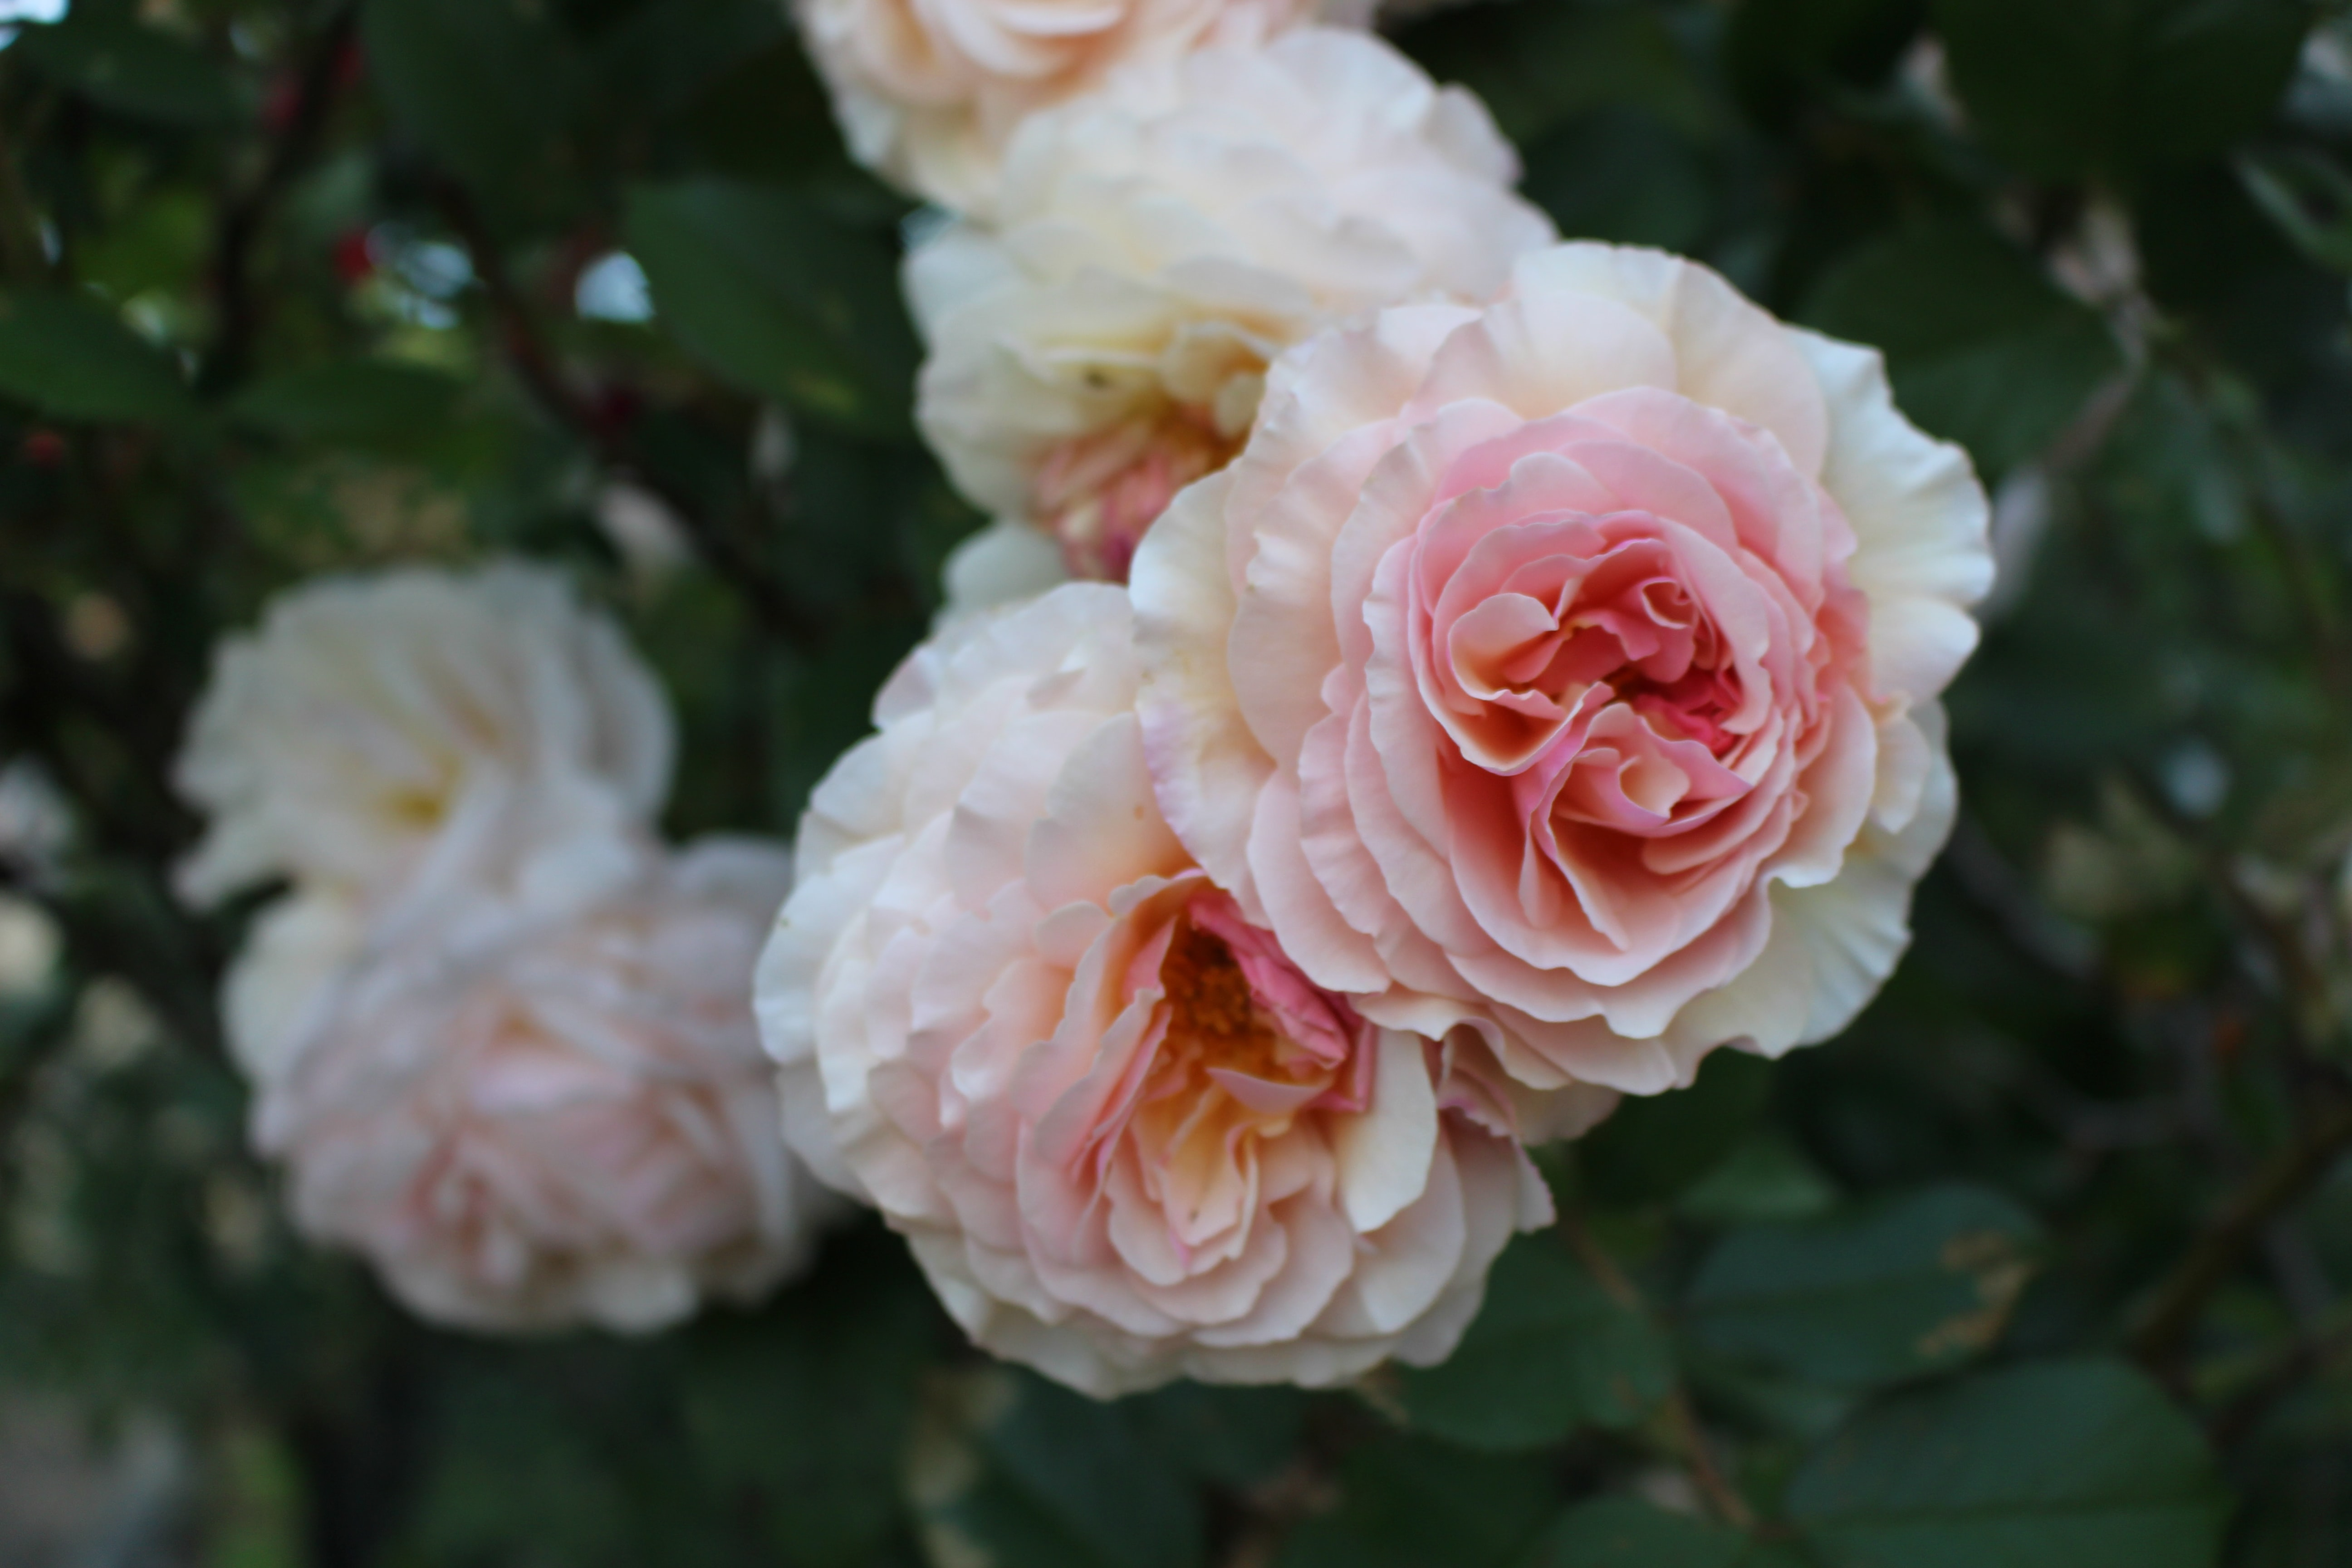 Delicate white and pink roses bloom in a park